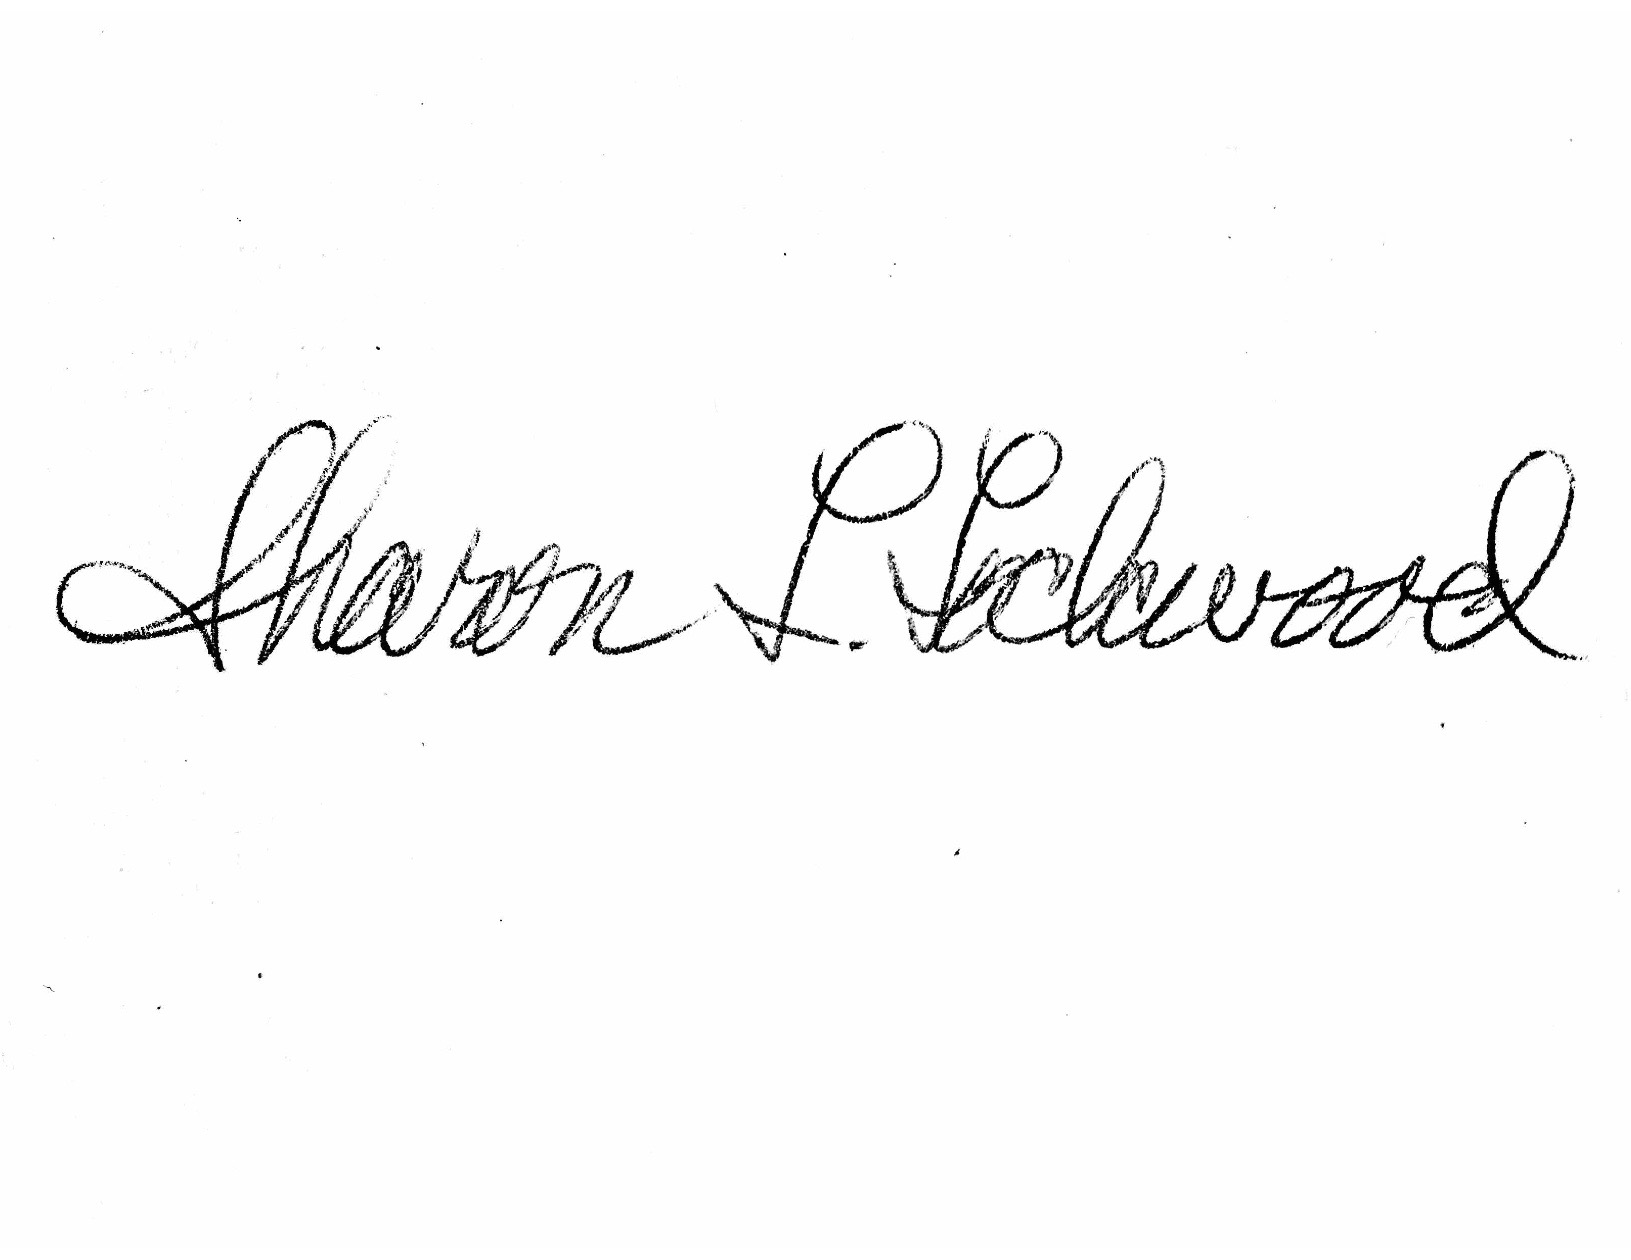 Sharon Lockwood's Signature